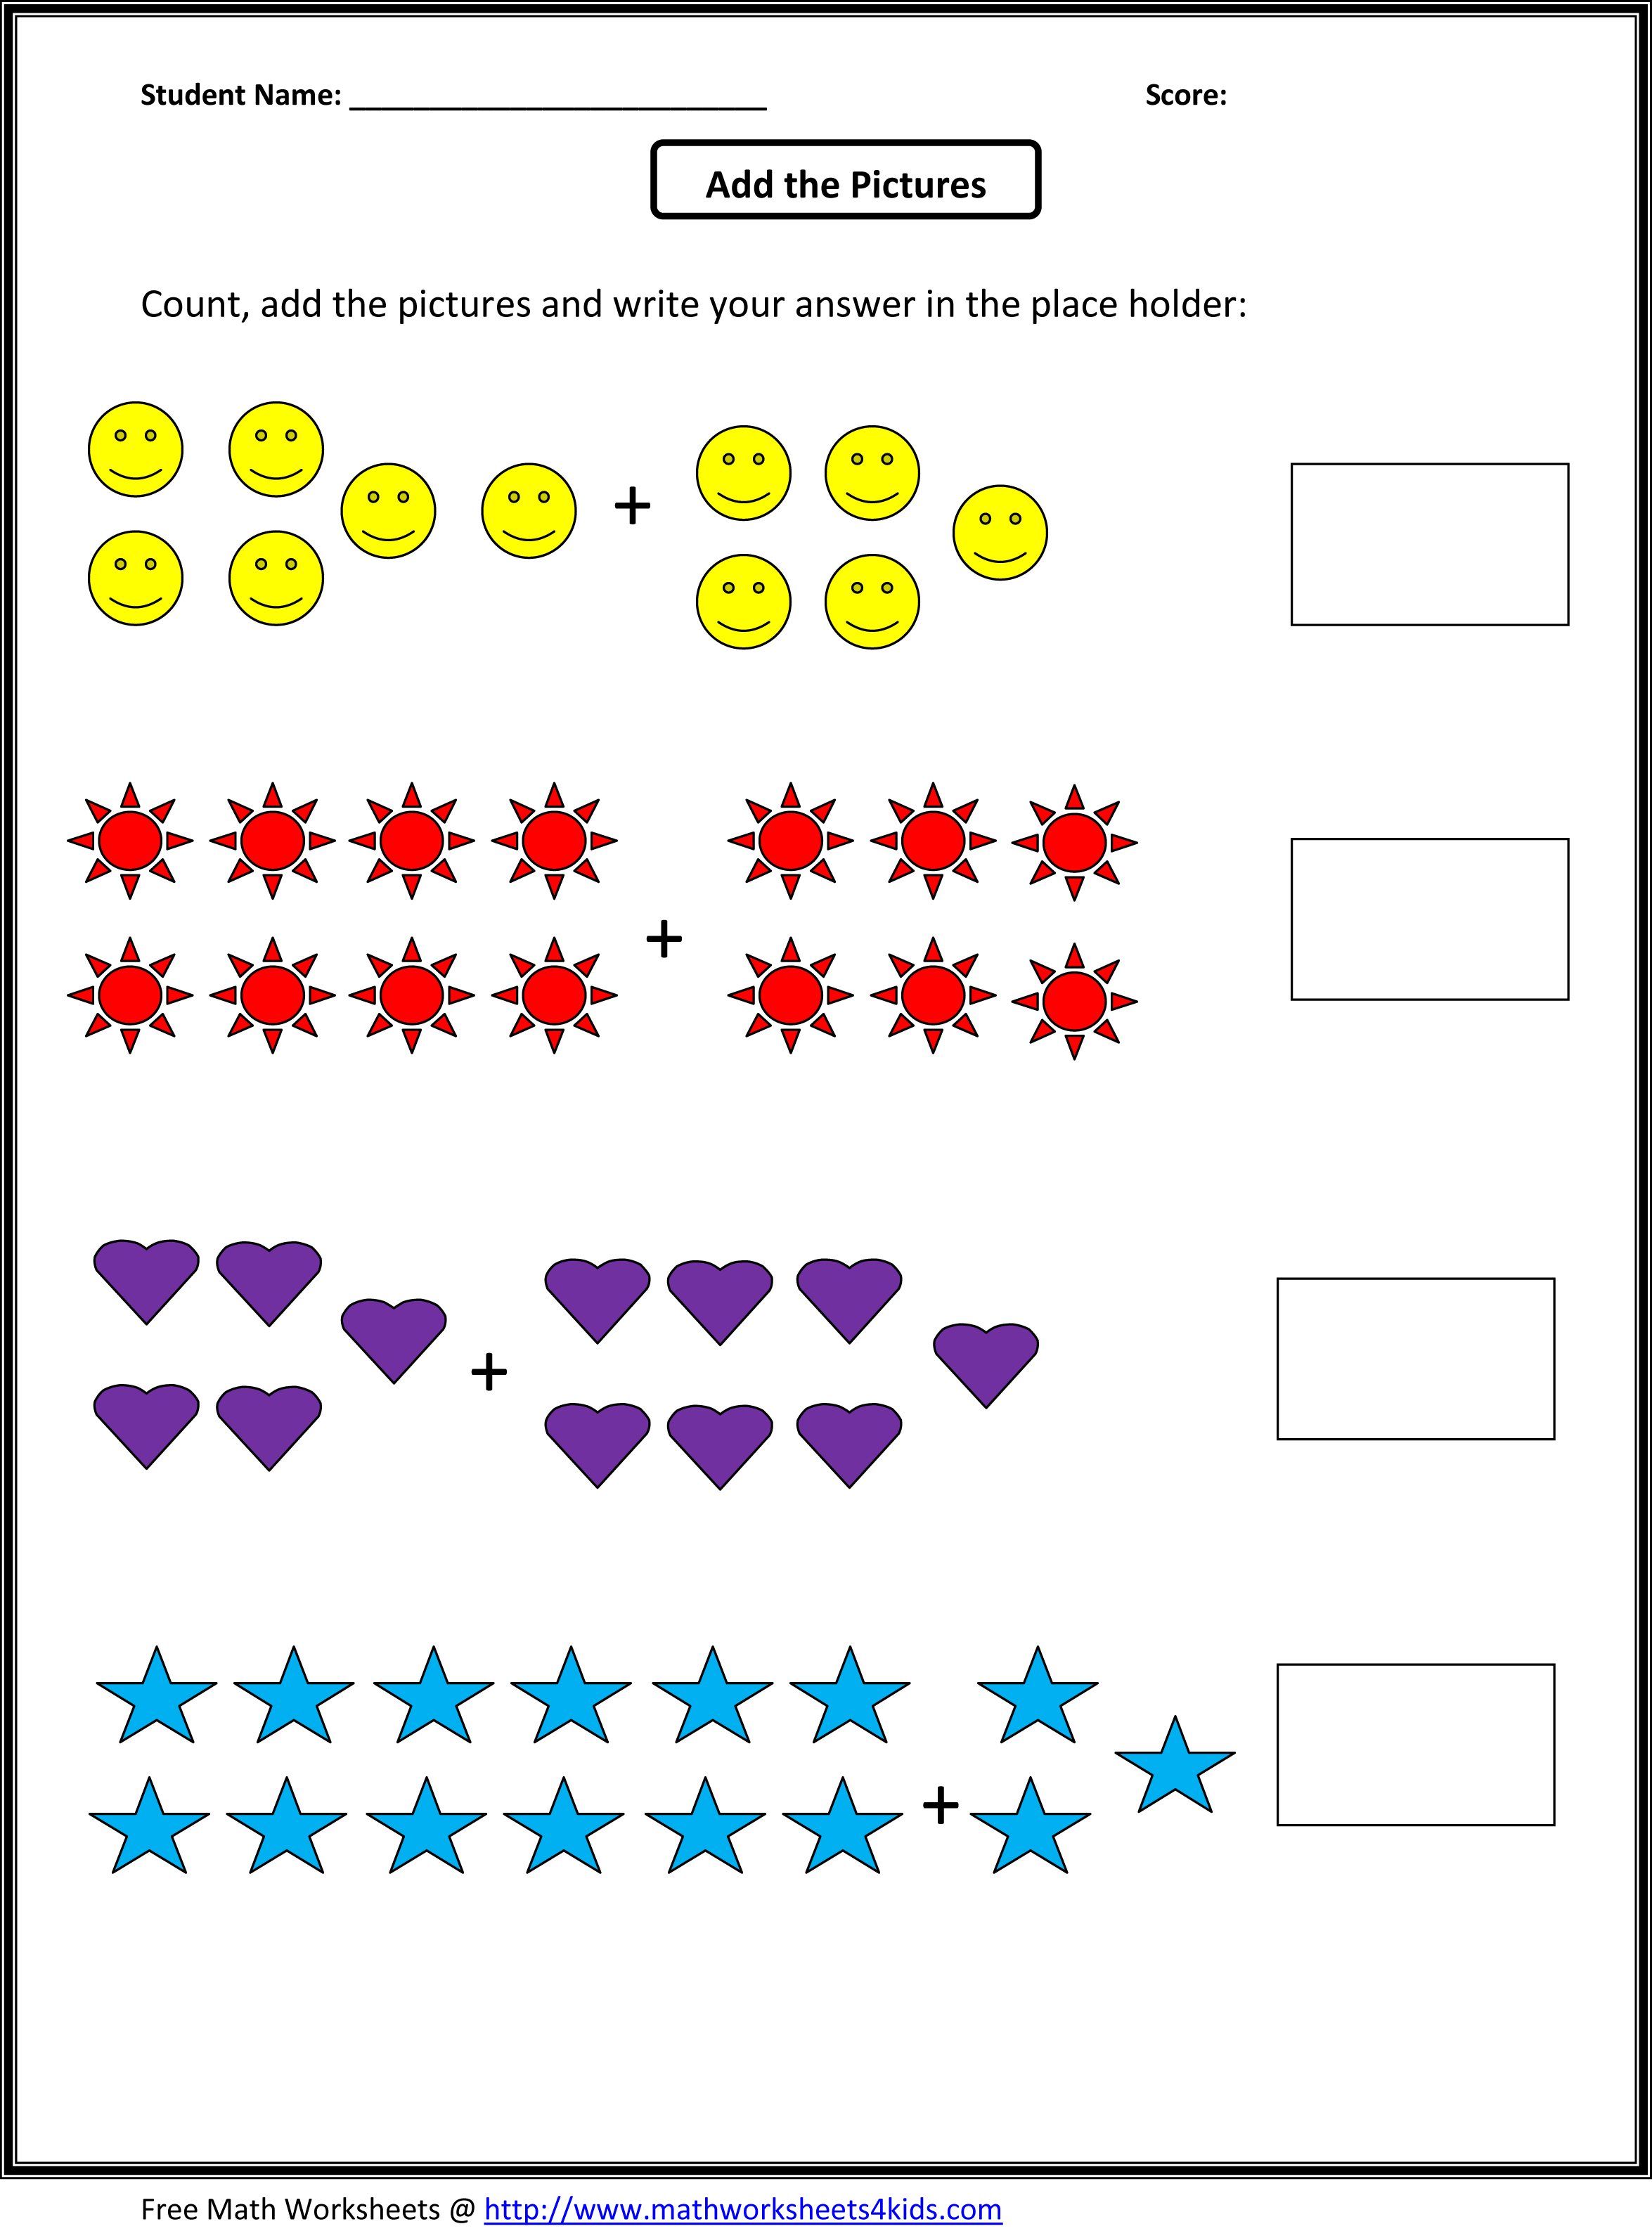 Weirdmailus  Inspiring Grade  Maths Worksheet  Reocurent With Inspiring Math Worksheets For St Grade Free  Reocurent With Lovely Urdu Alphabets Worksheets For Kids Also Reading Comprehension For Grade  Free Worksheet In Addition Worksheets On Conflict And Worksheet On Profit And Loss As Well As Addition And Subtraction Word Problems Worksheets Nd Grade Additionally Tests Of Divisibility Worksheet From Reocurentcom With Weirdmailus  Inspiring Grade  Maths Worksheet  Reocurent With Lovely Math Worksheets For St Grade Free  Reocurent And Inspiring Urdu Alphabets Worksheets For Kids Also Reading Comprehension For Grade  Free Worksheet In Addition Worksheets On Conflict From Reocurentcom